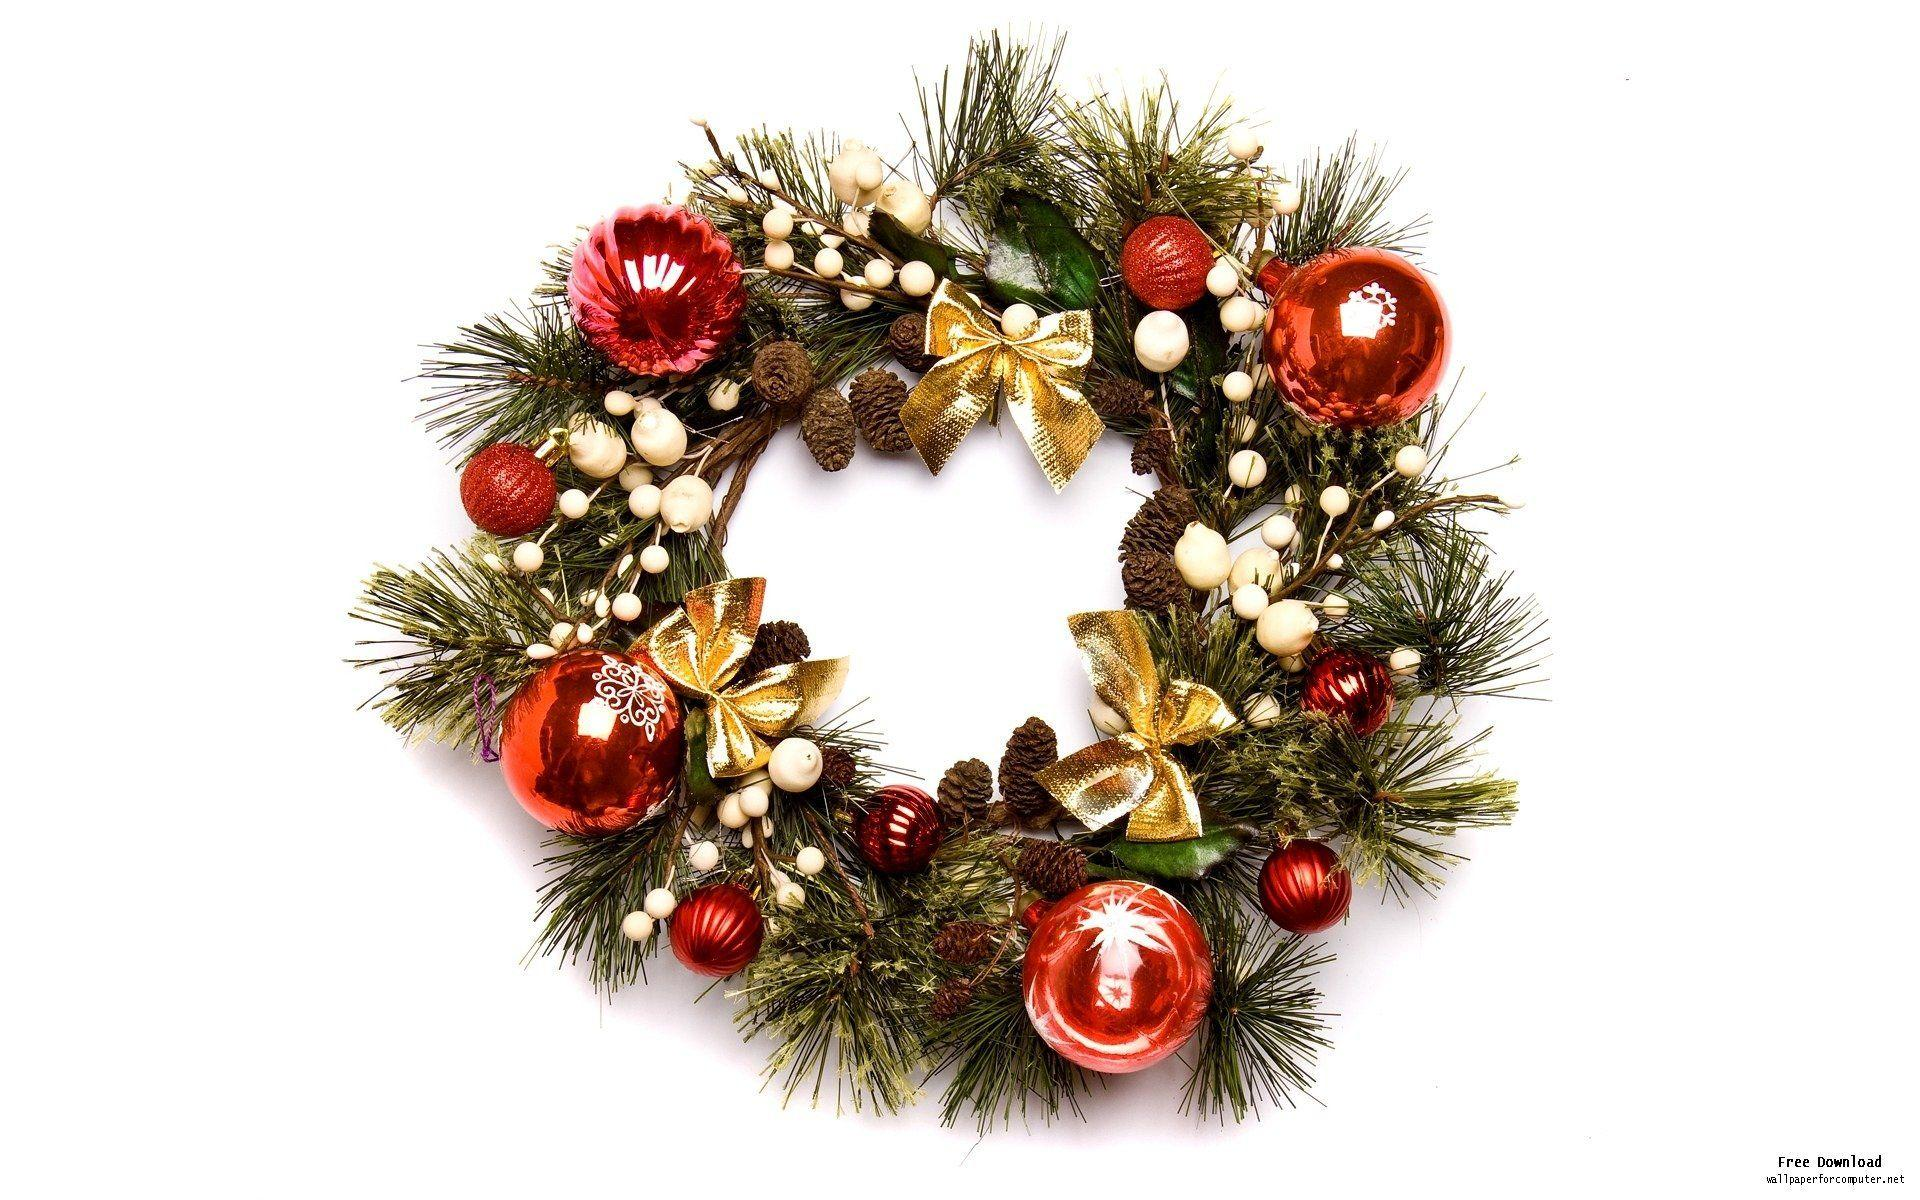 Christmas Wreath Wallpapers - Wallpaper Cave